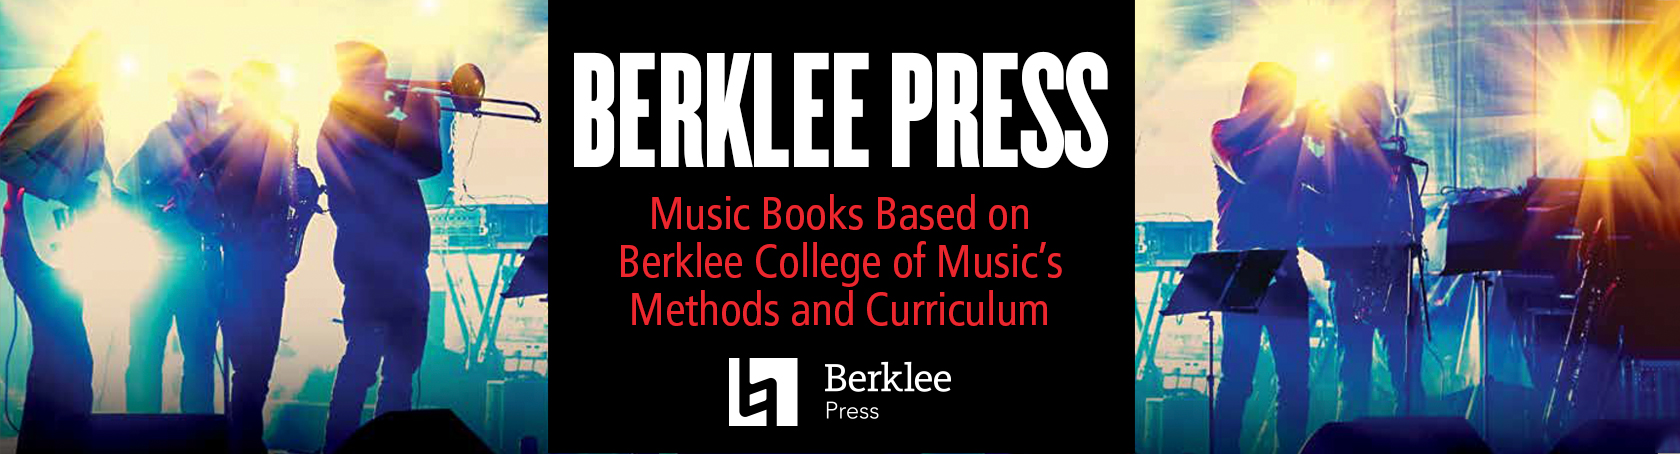 Berklee Press